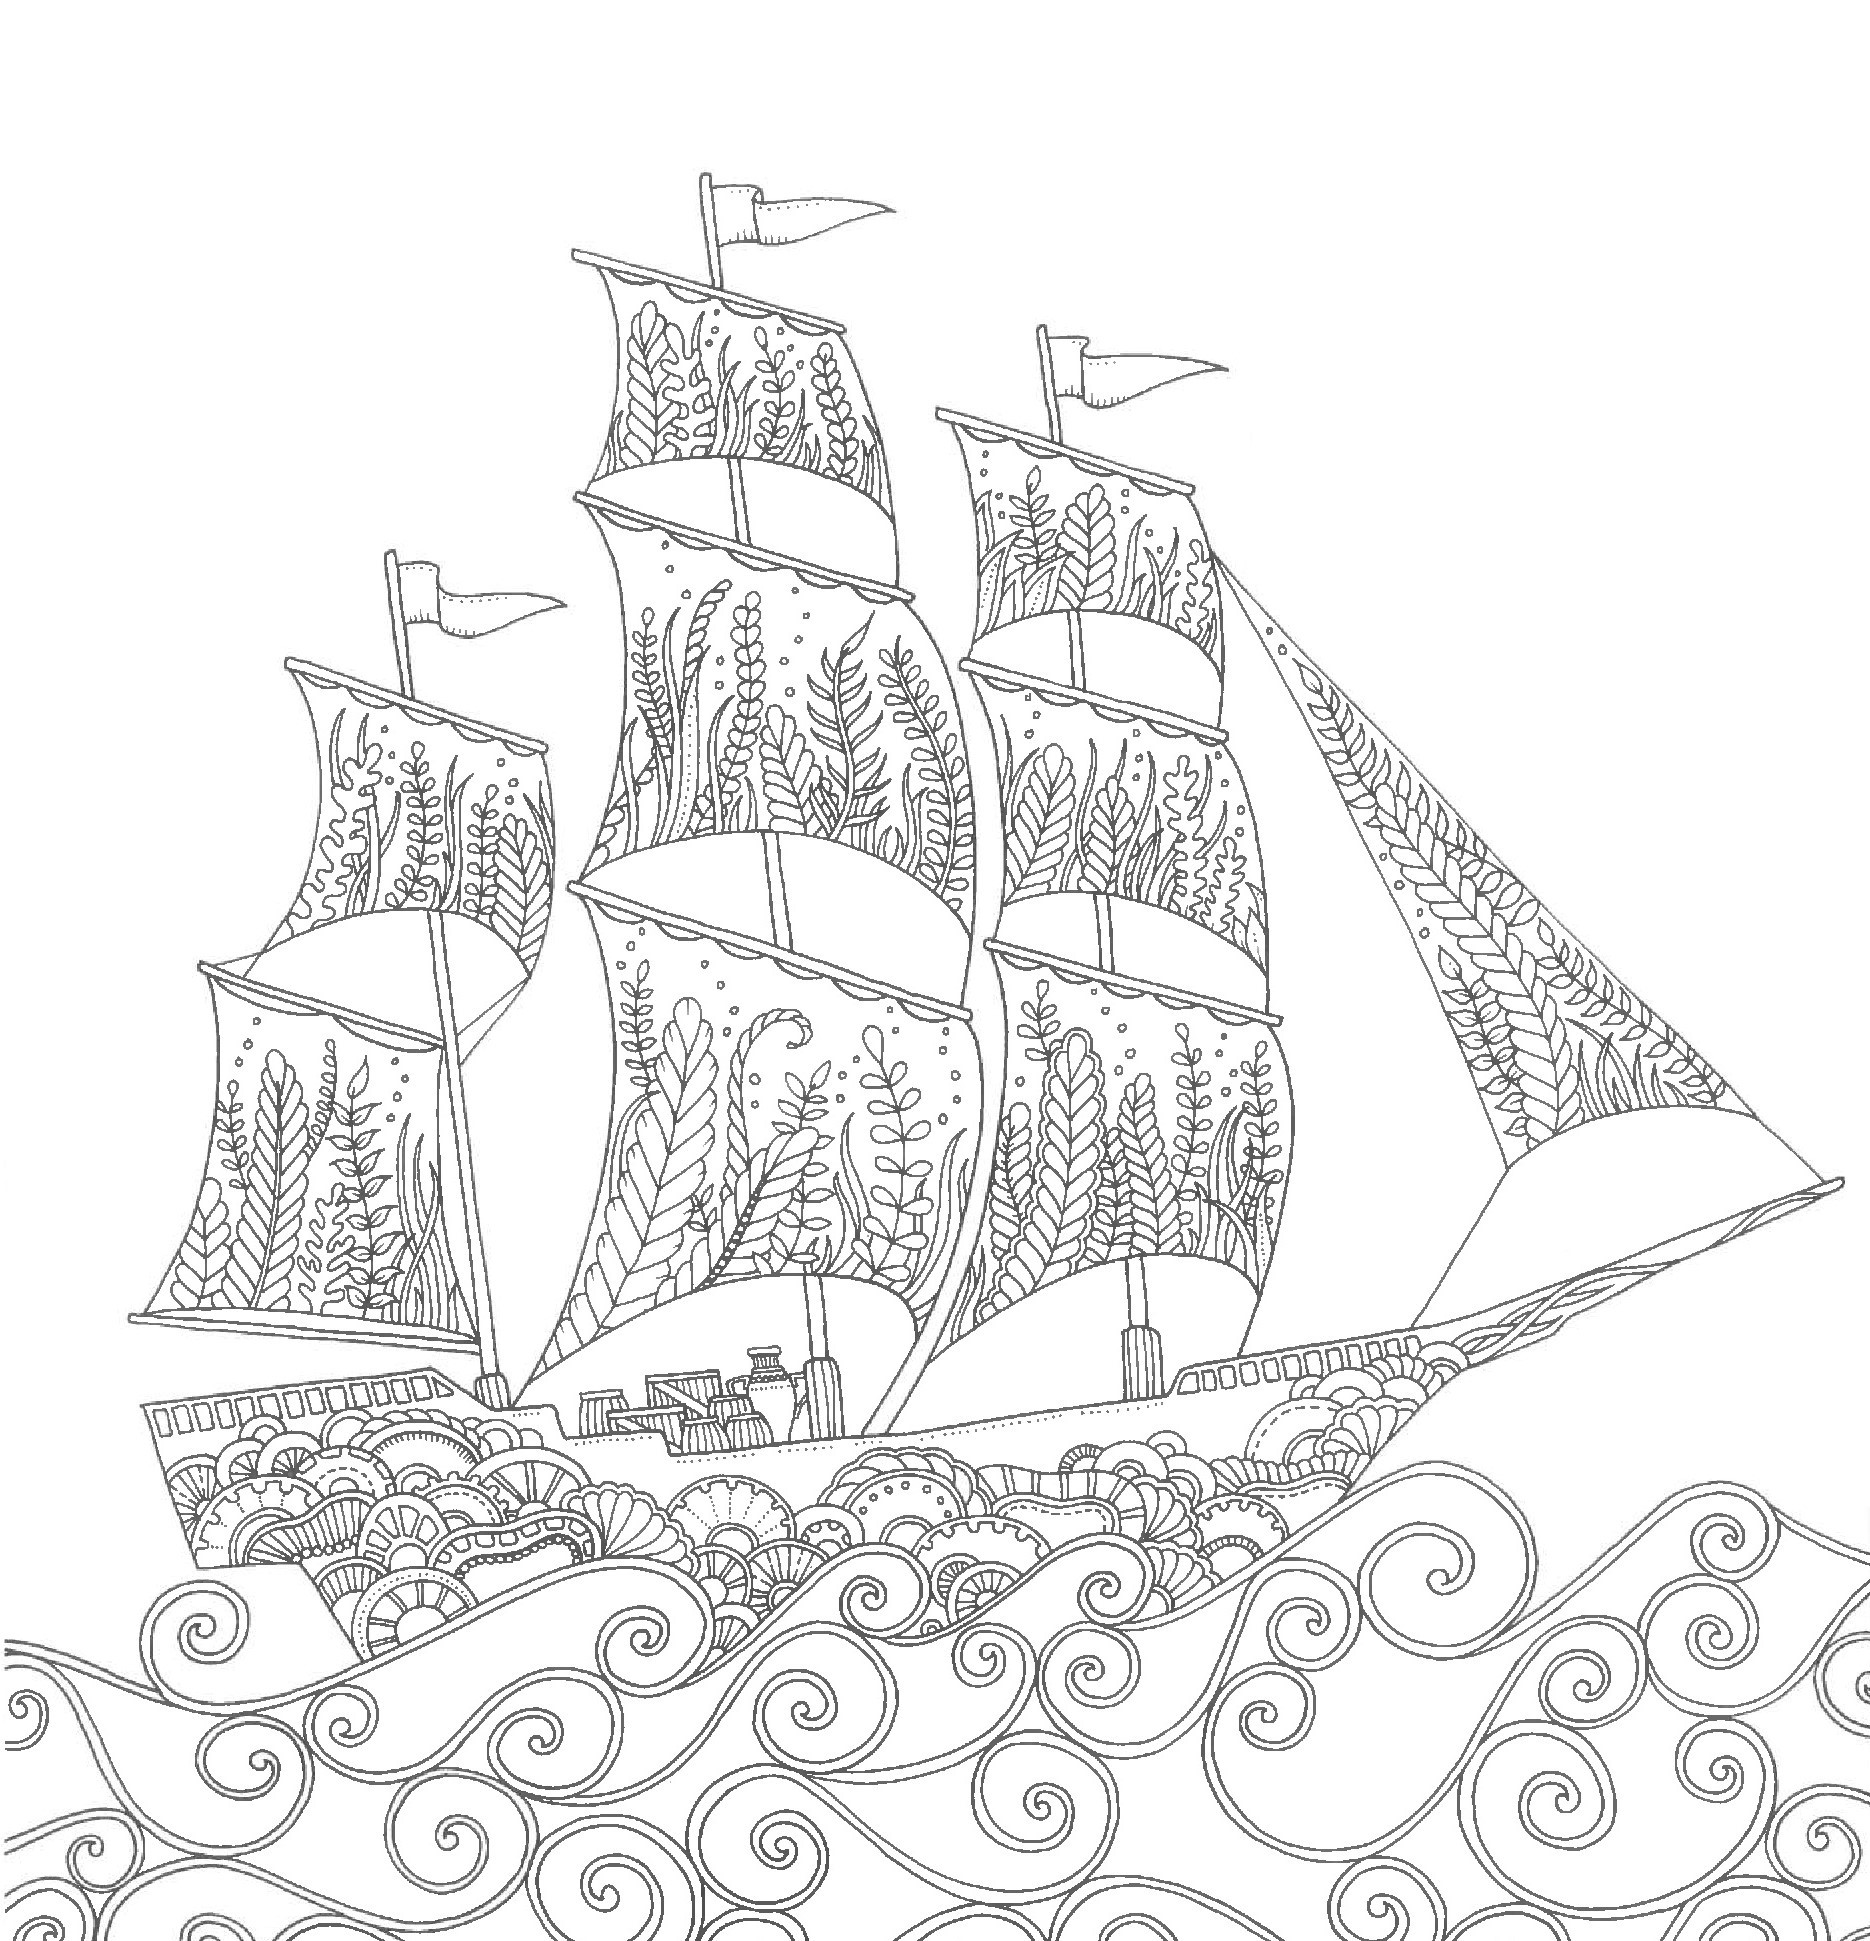 A ship on the waves